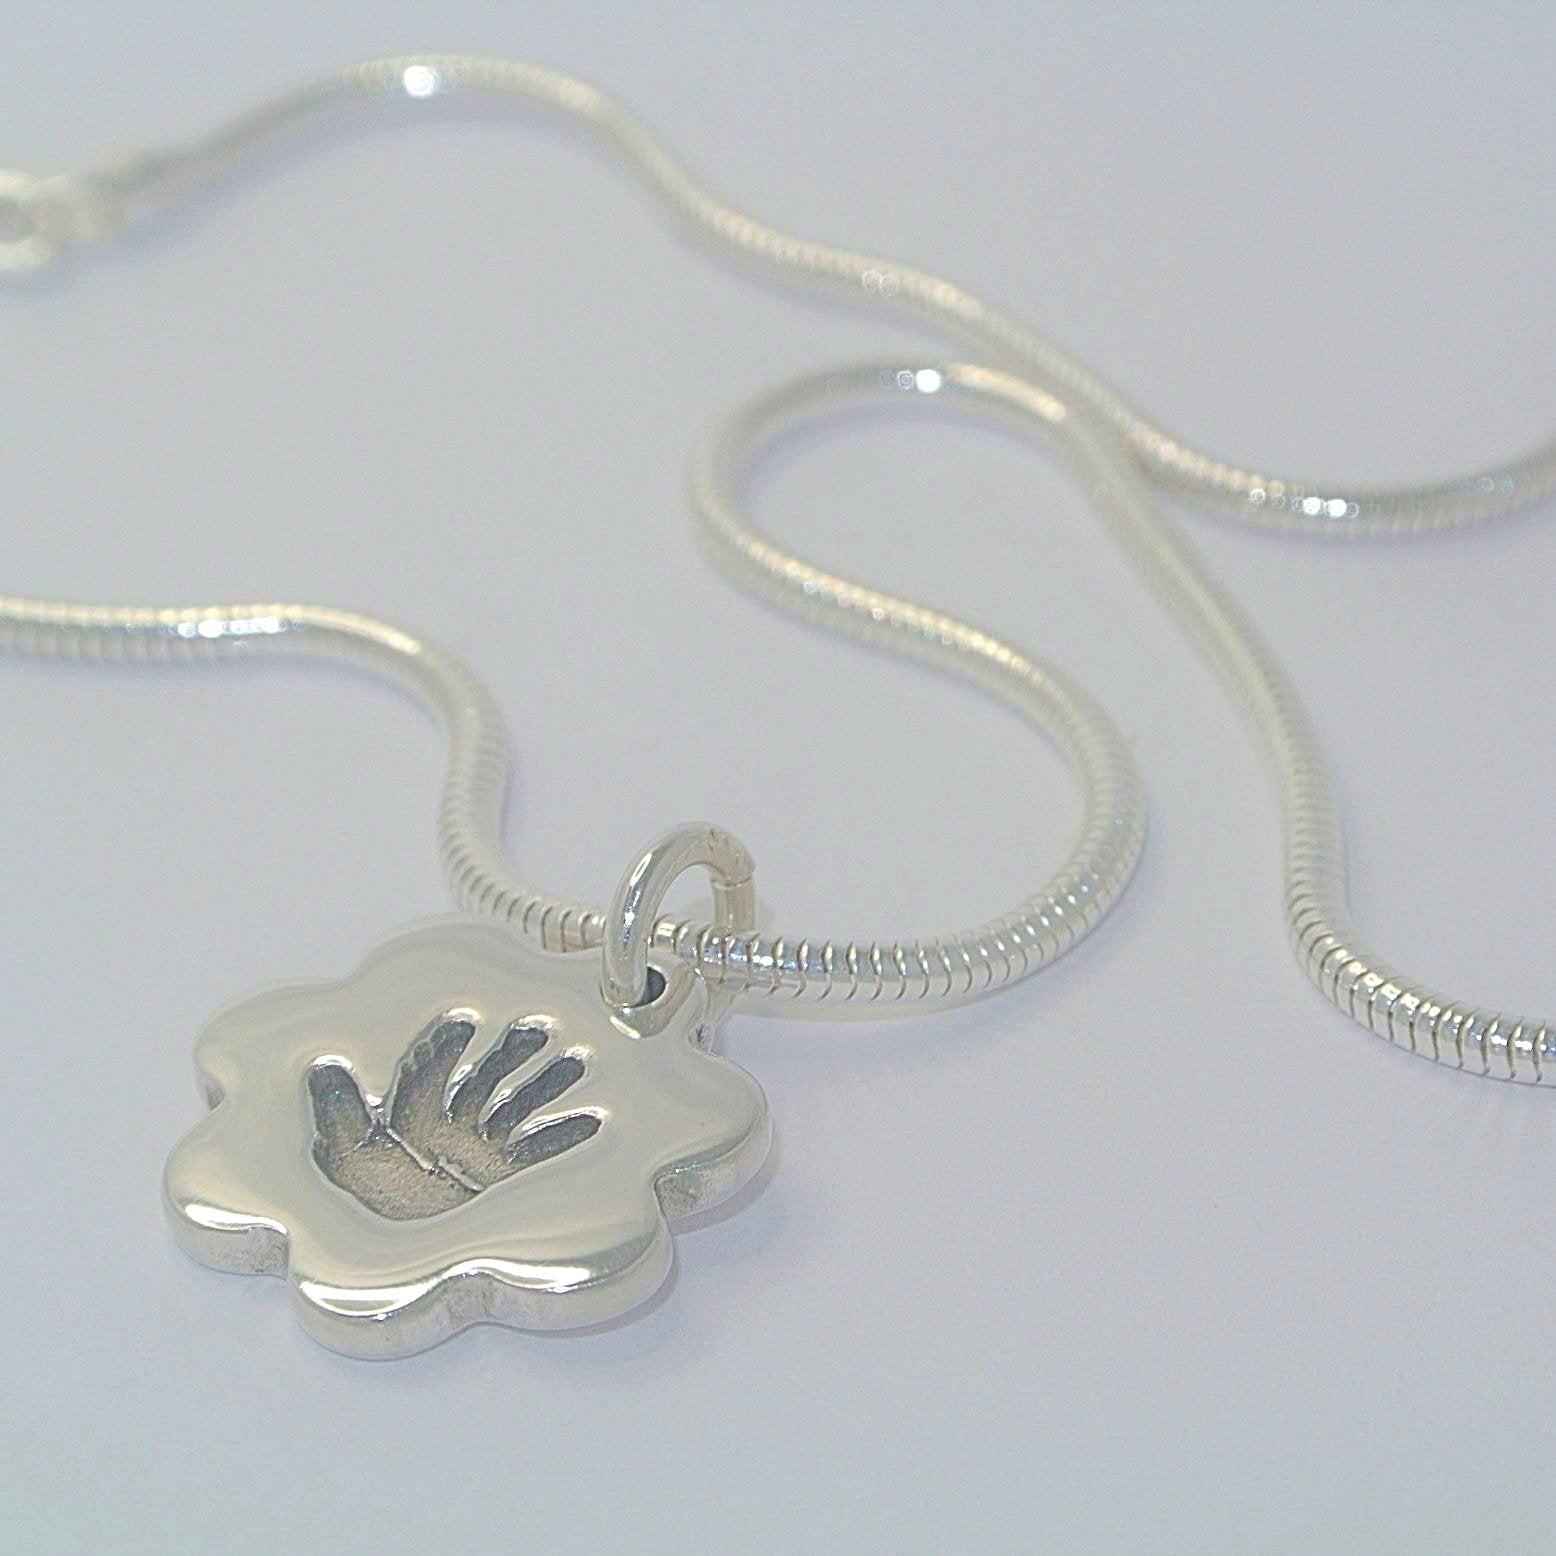 Bracelet Charm Sterling Silver Handprint Keepsake Jewellery